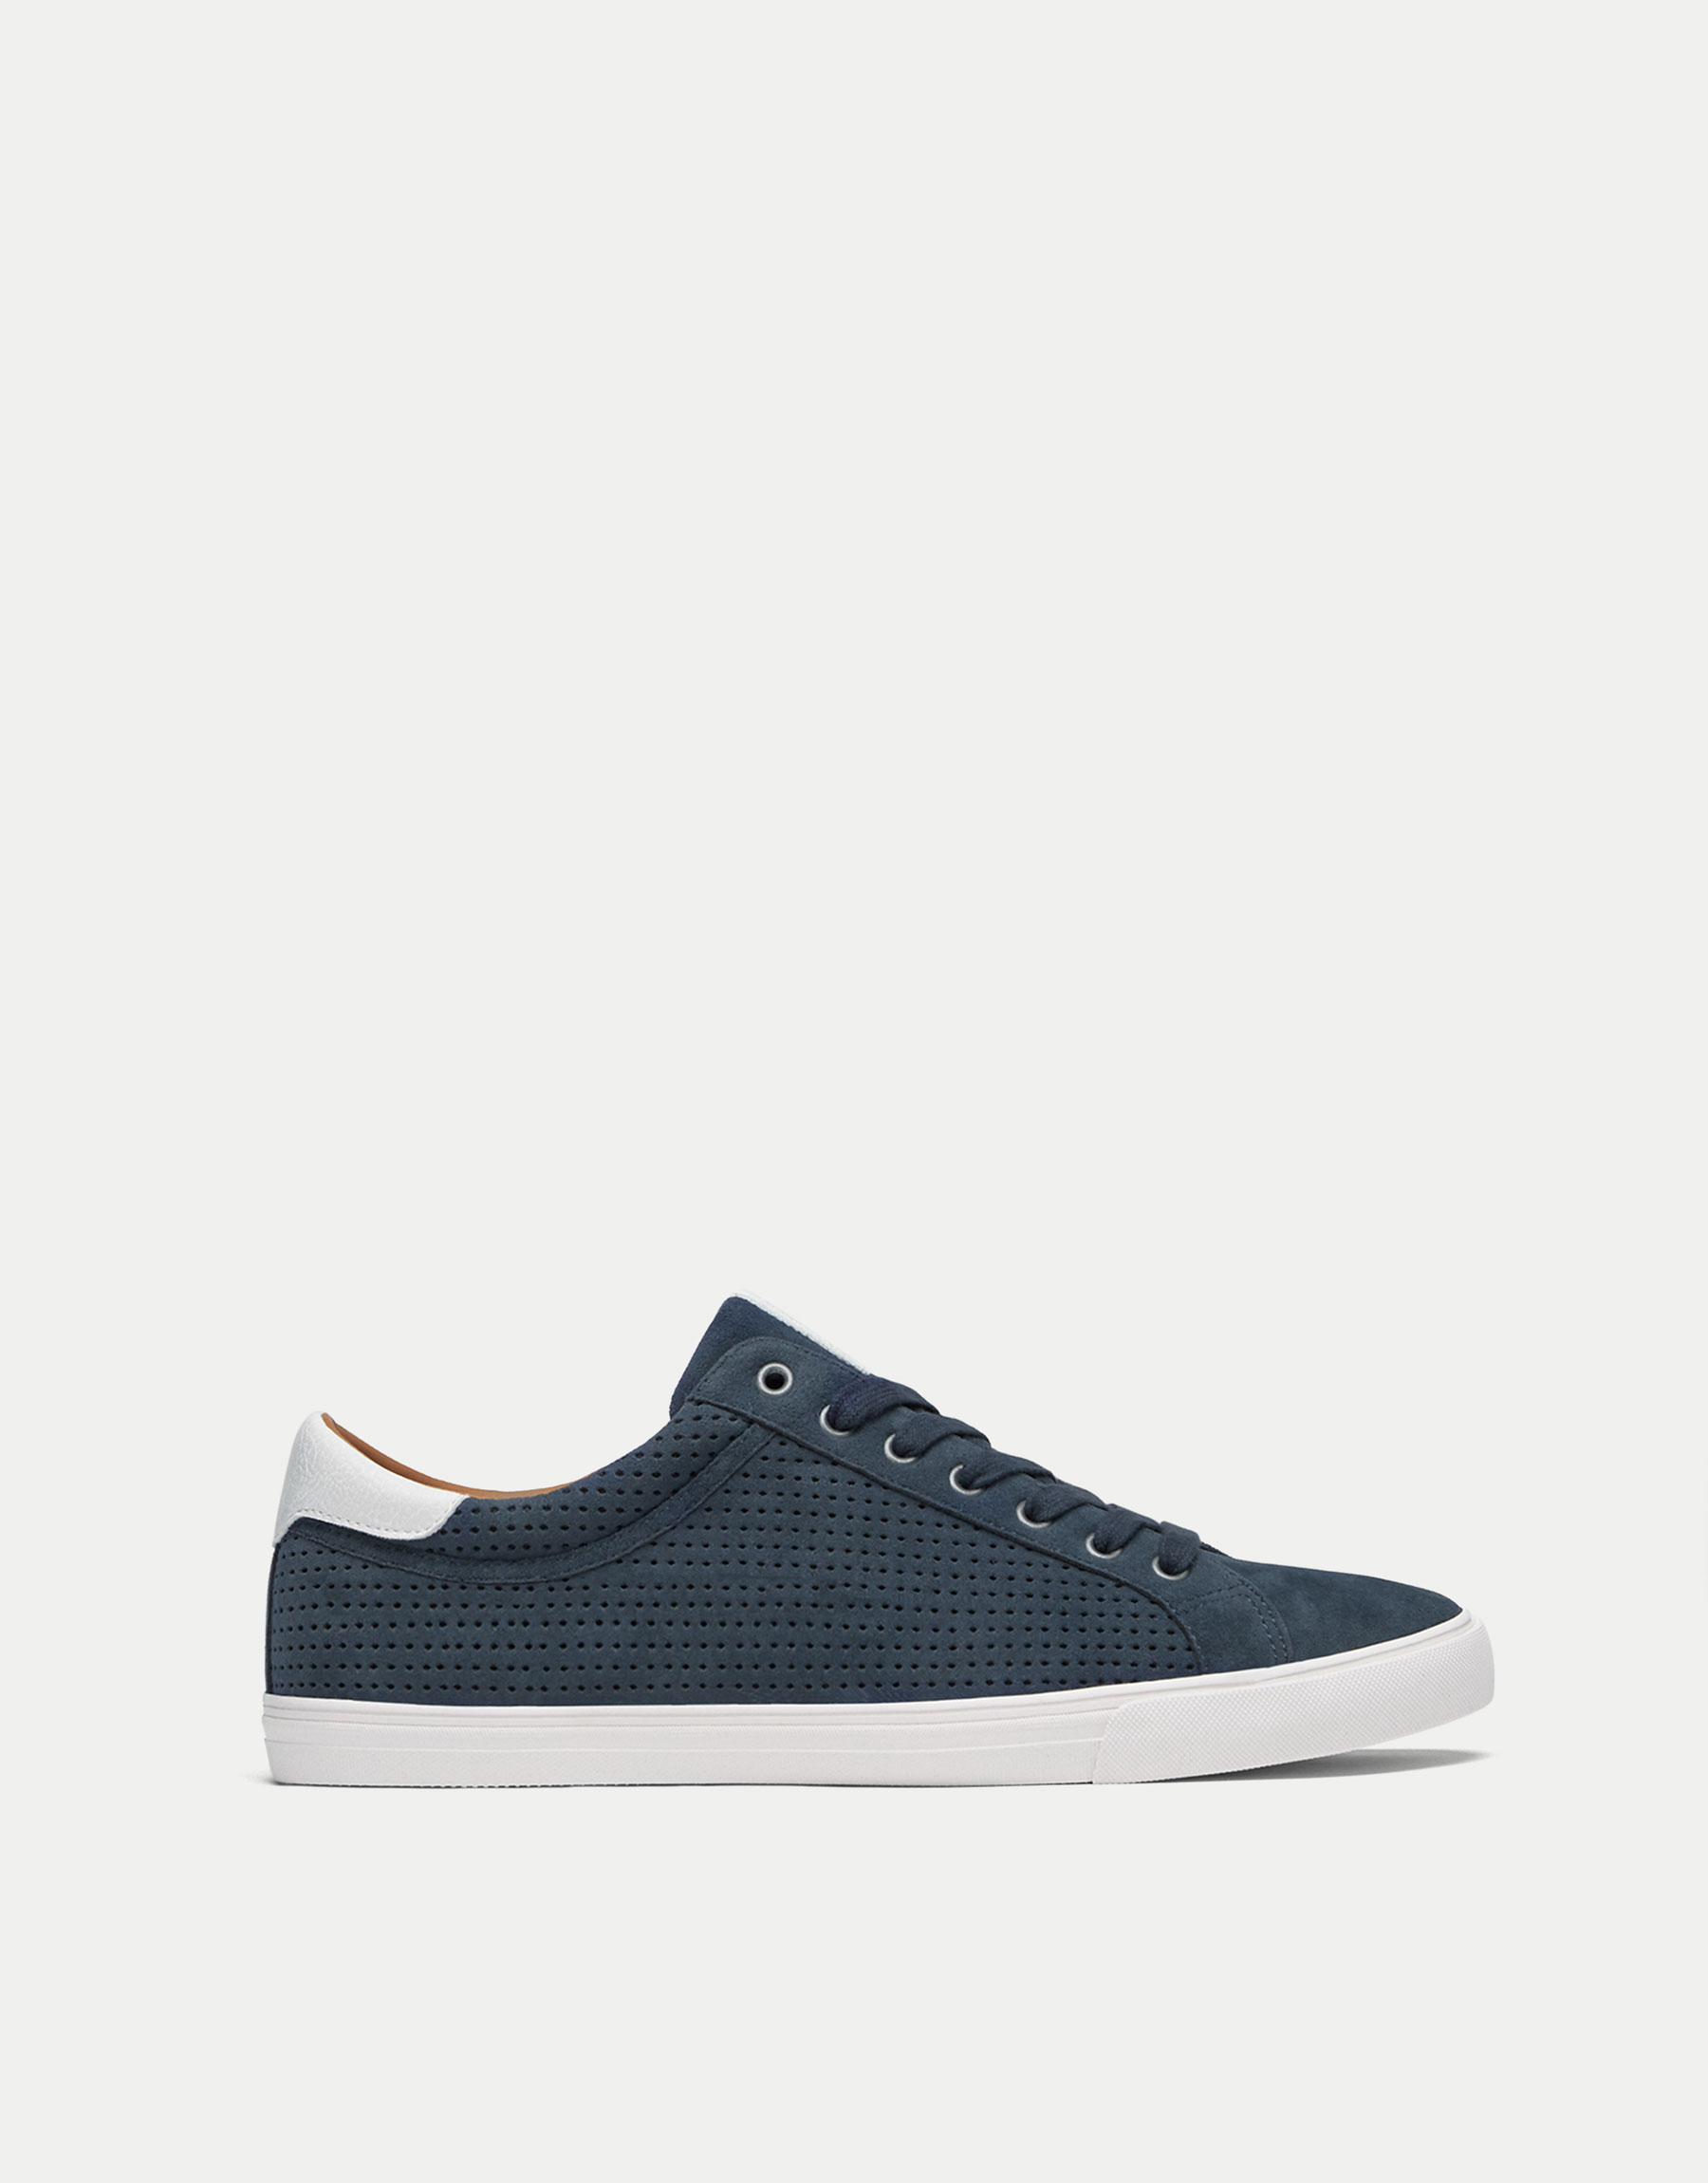 Blue die-cut sneakers